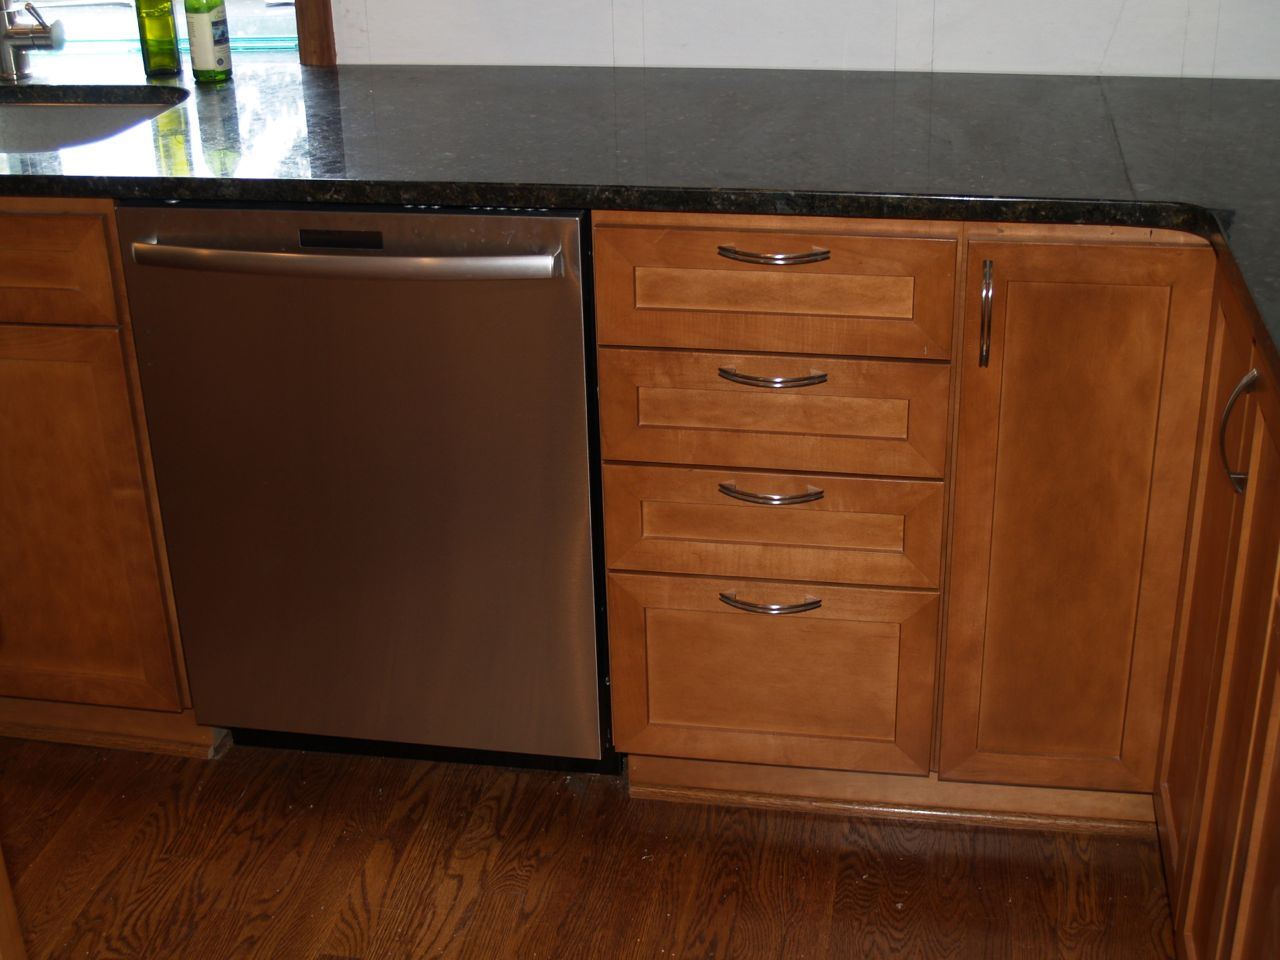 New Kitchen Cabinets And Dishwasher